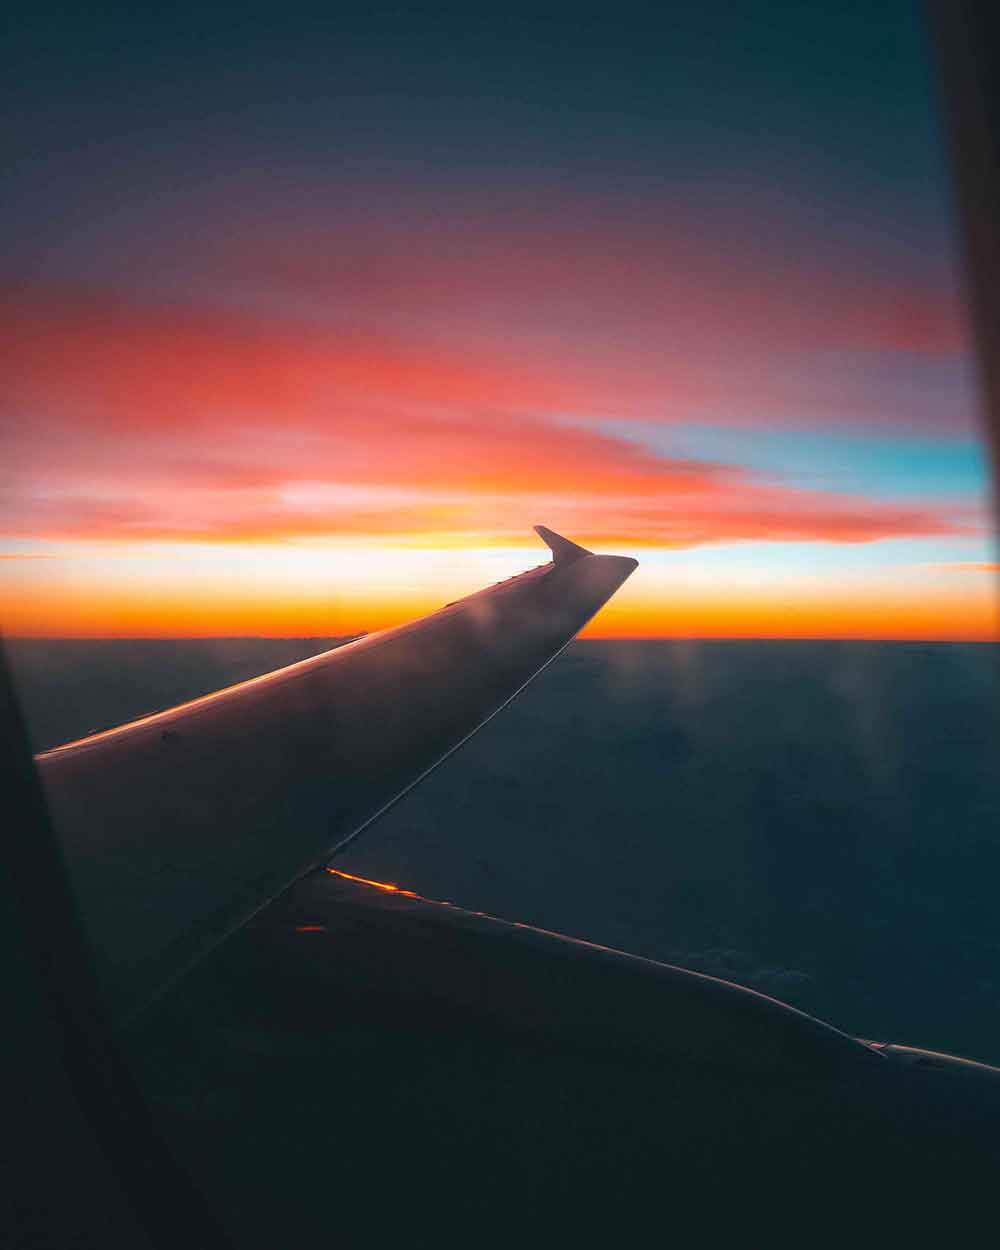 Airplane sunset view